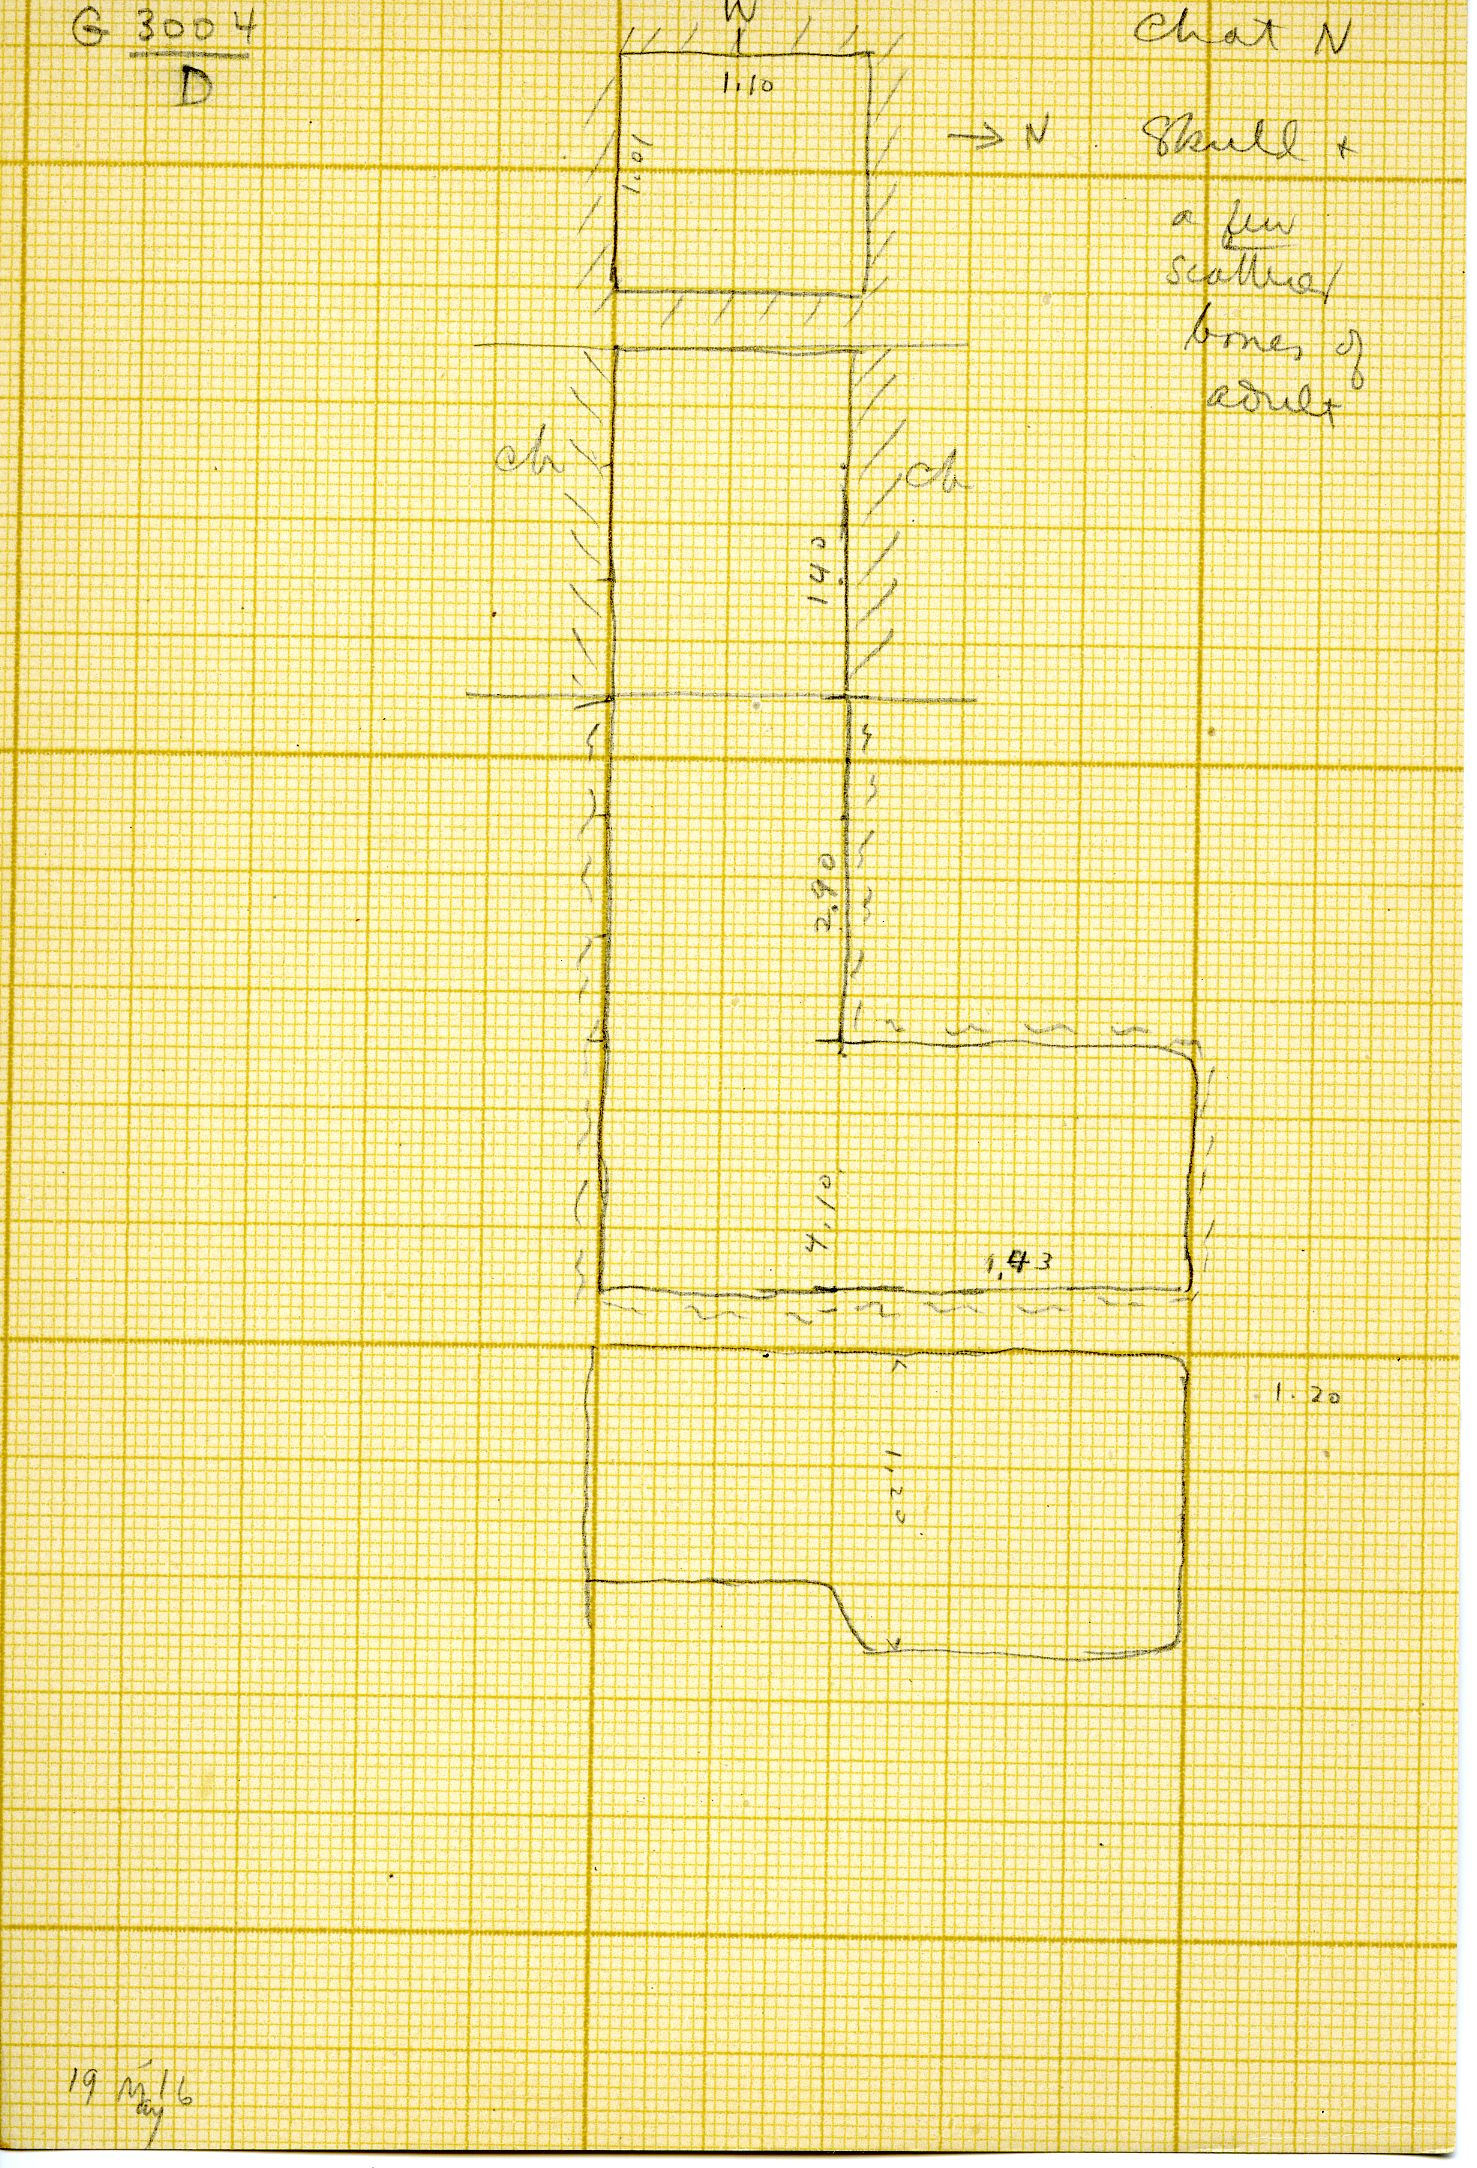 Maps and plans: G 3004, Shaft D